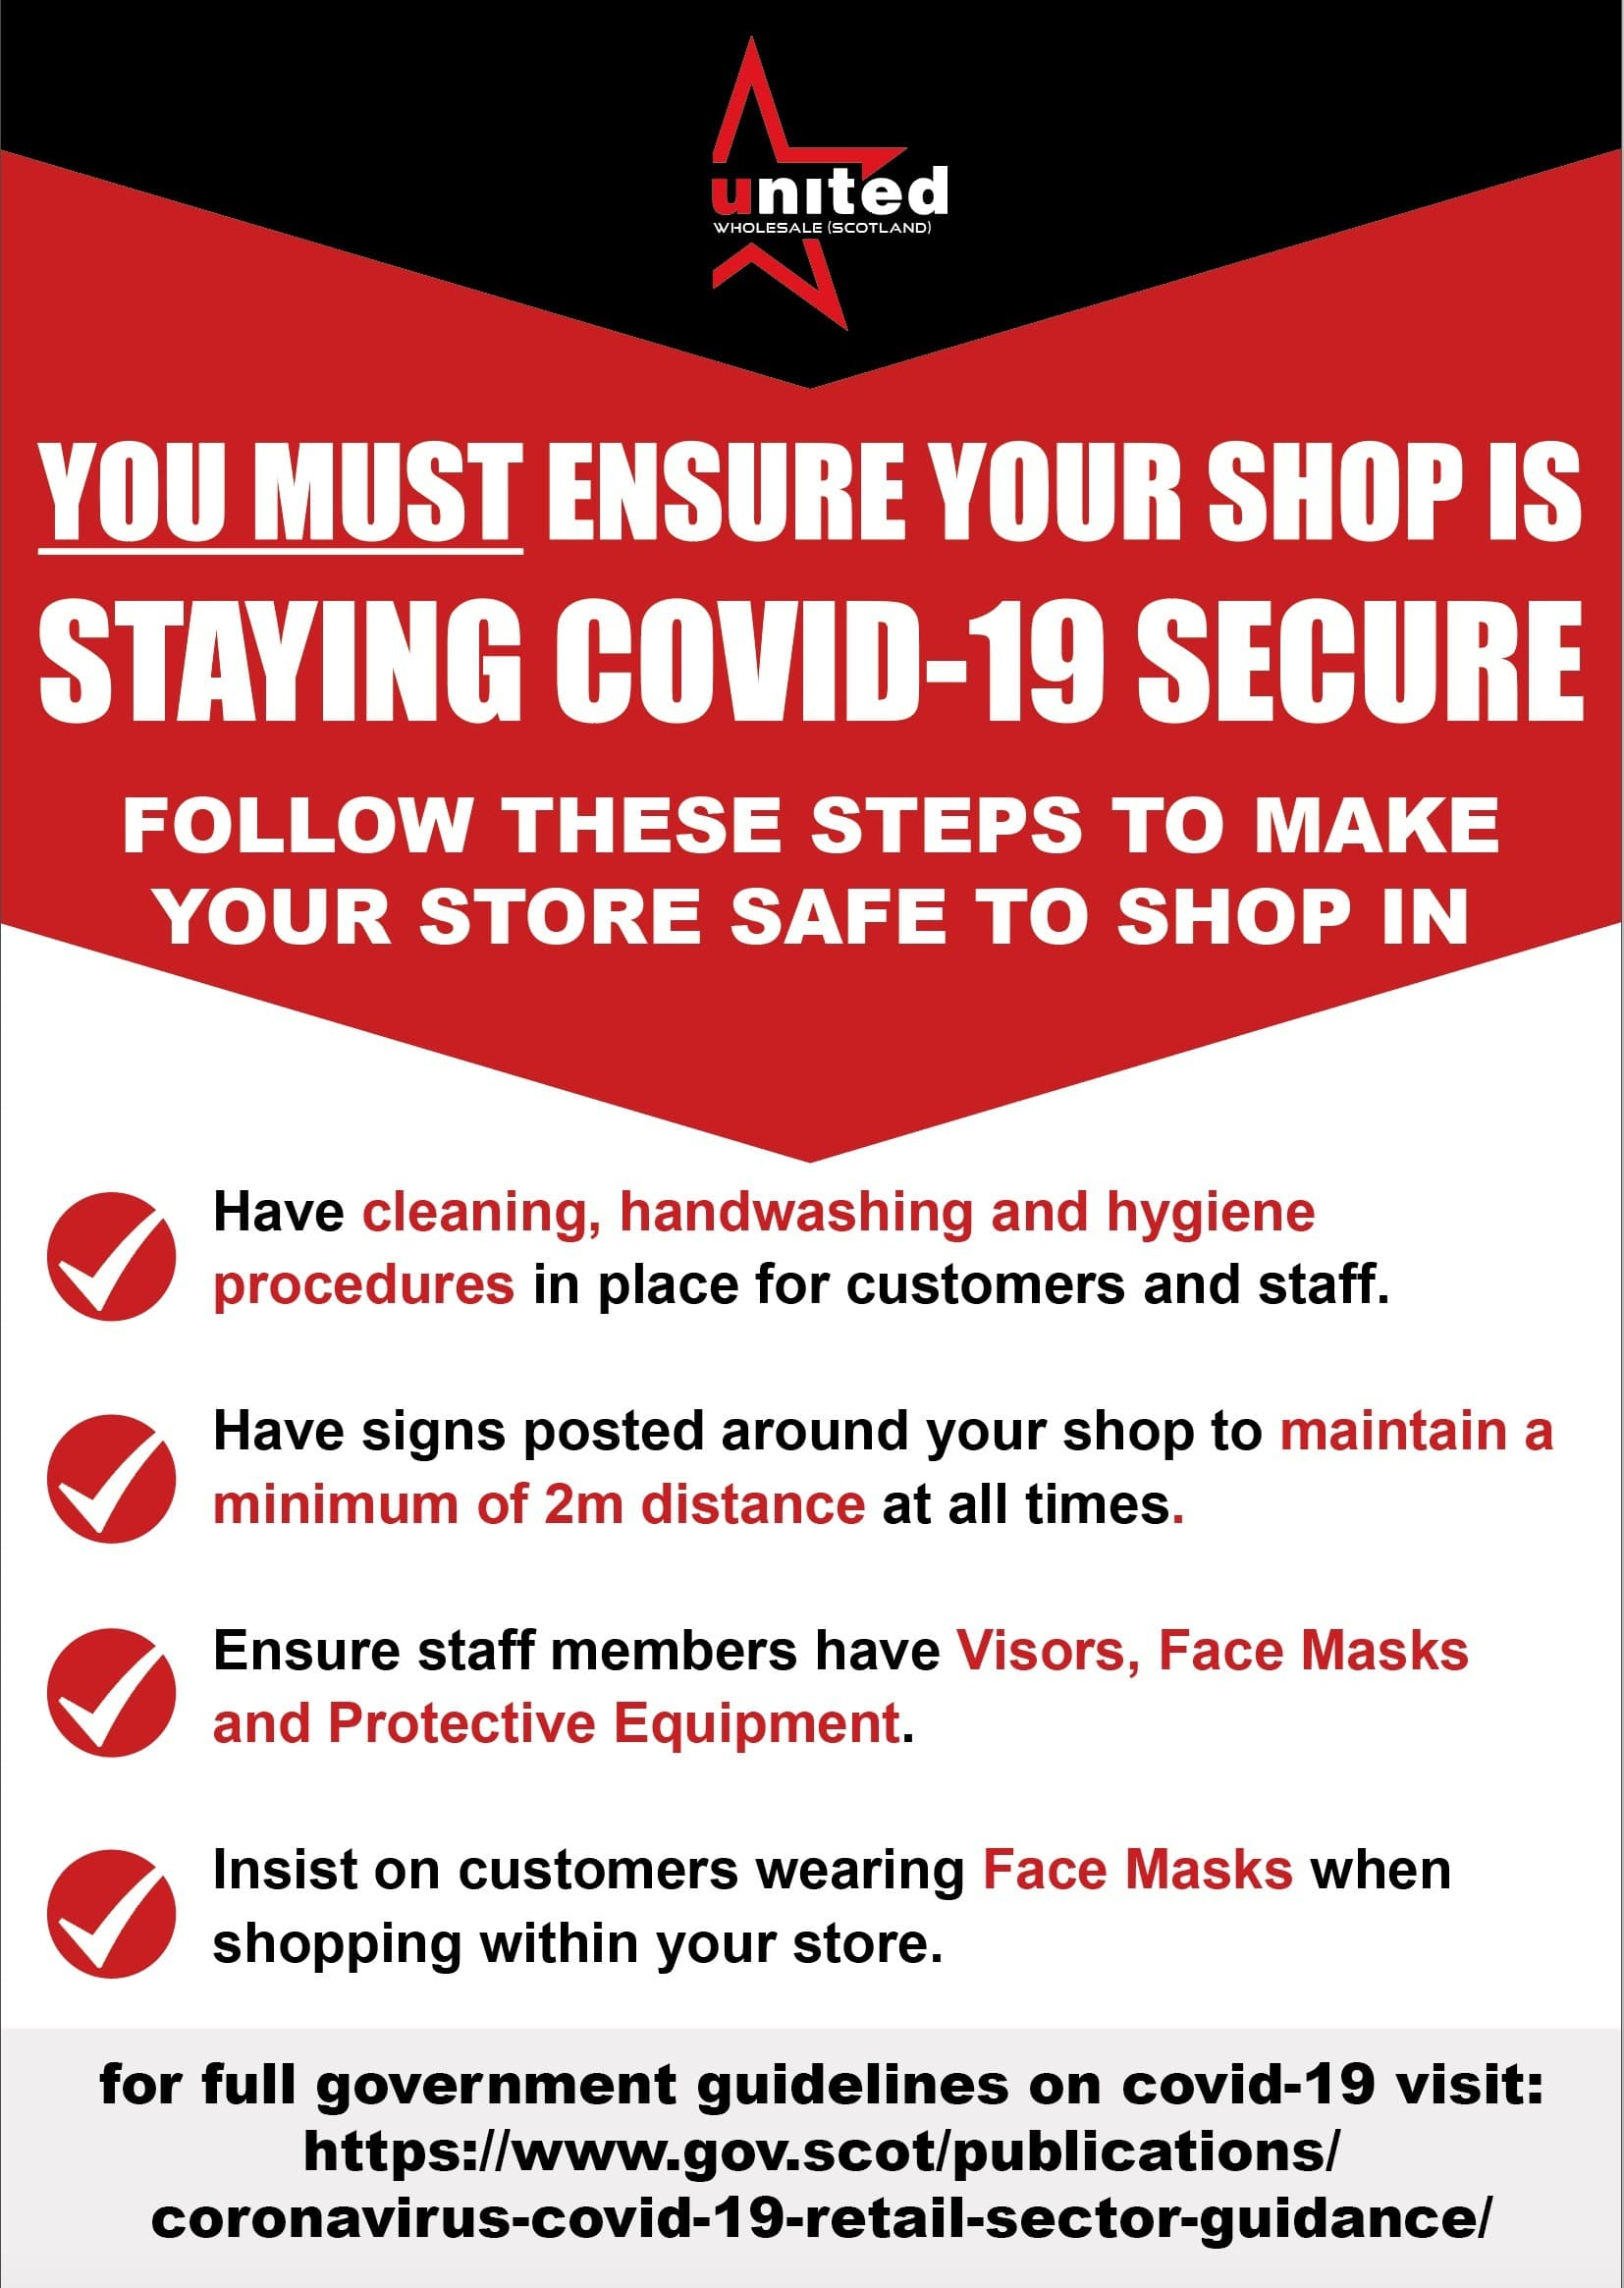 You must ensure your shop is staying covid-19 secure